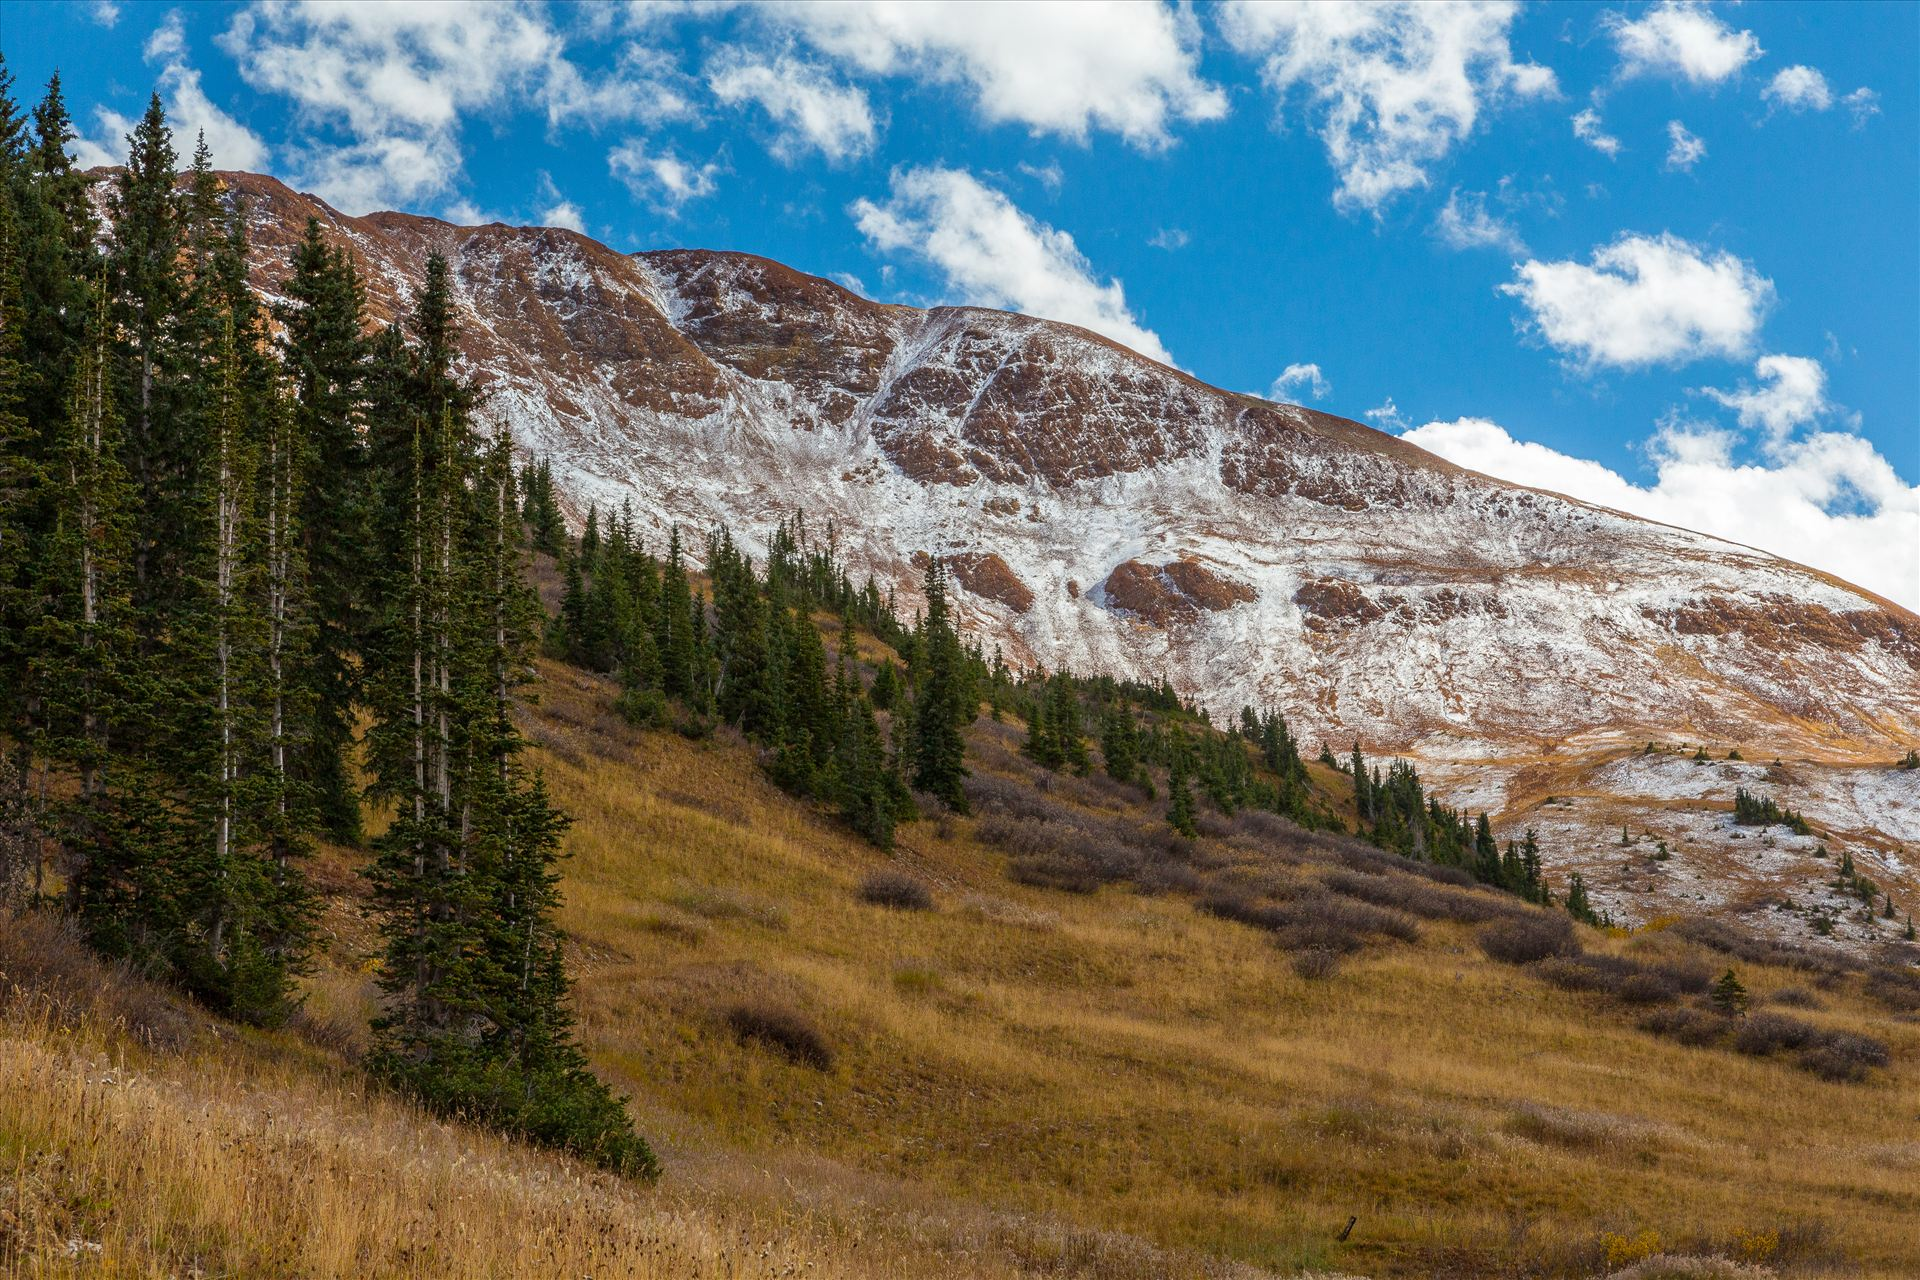 Snow at Mount Baldy Wilderness Snow on the peaks at the Mount Baldy Wilderness area, near the summit. Taken from Schofield Pass in Crested Butte, Colorado. by Scott Smith Photos